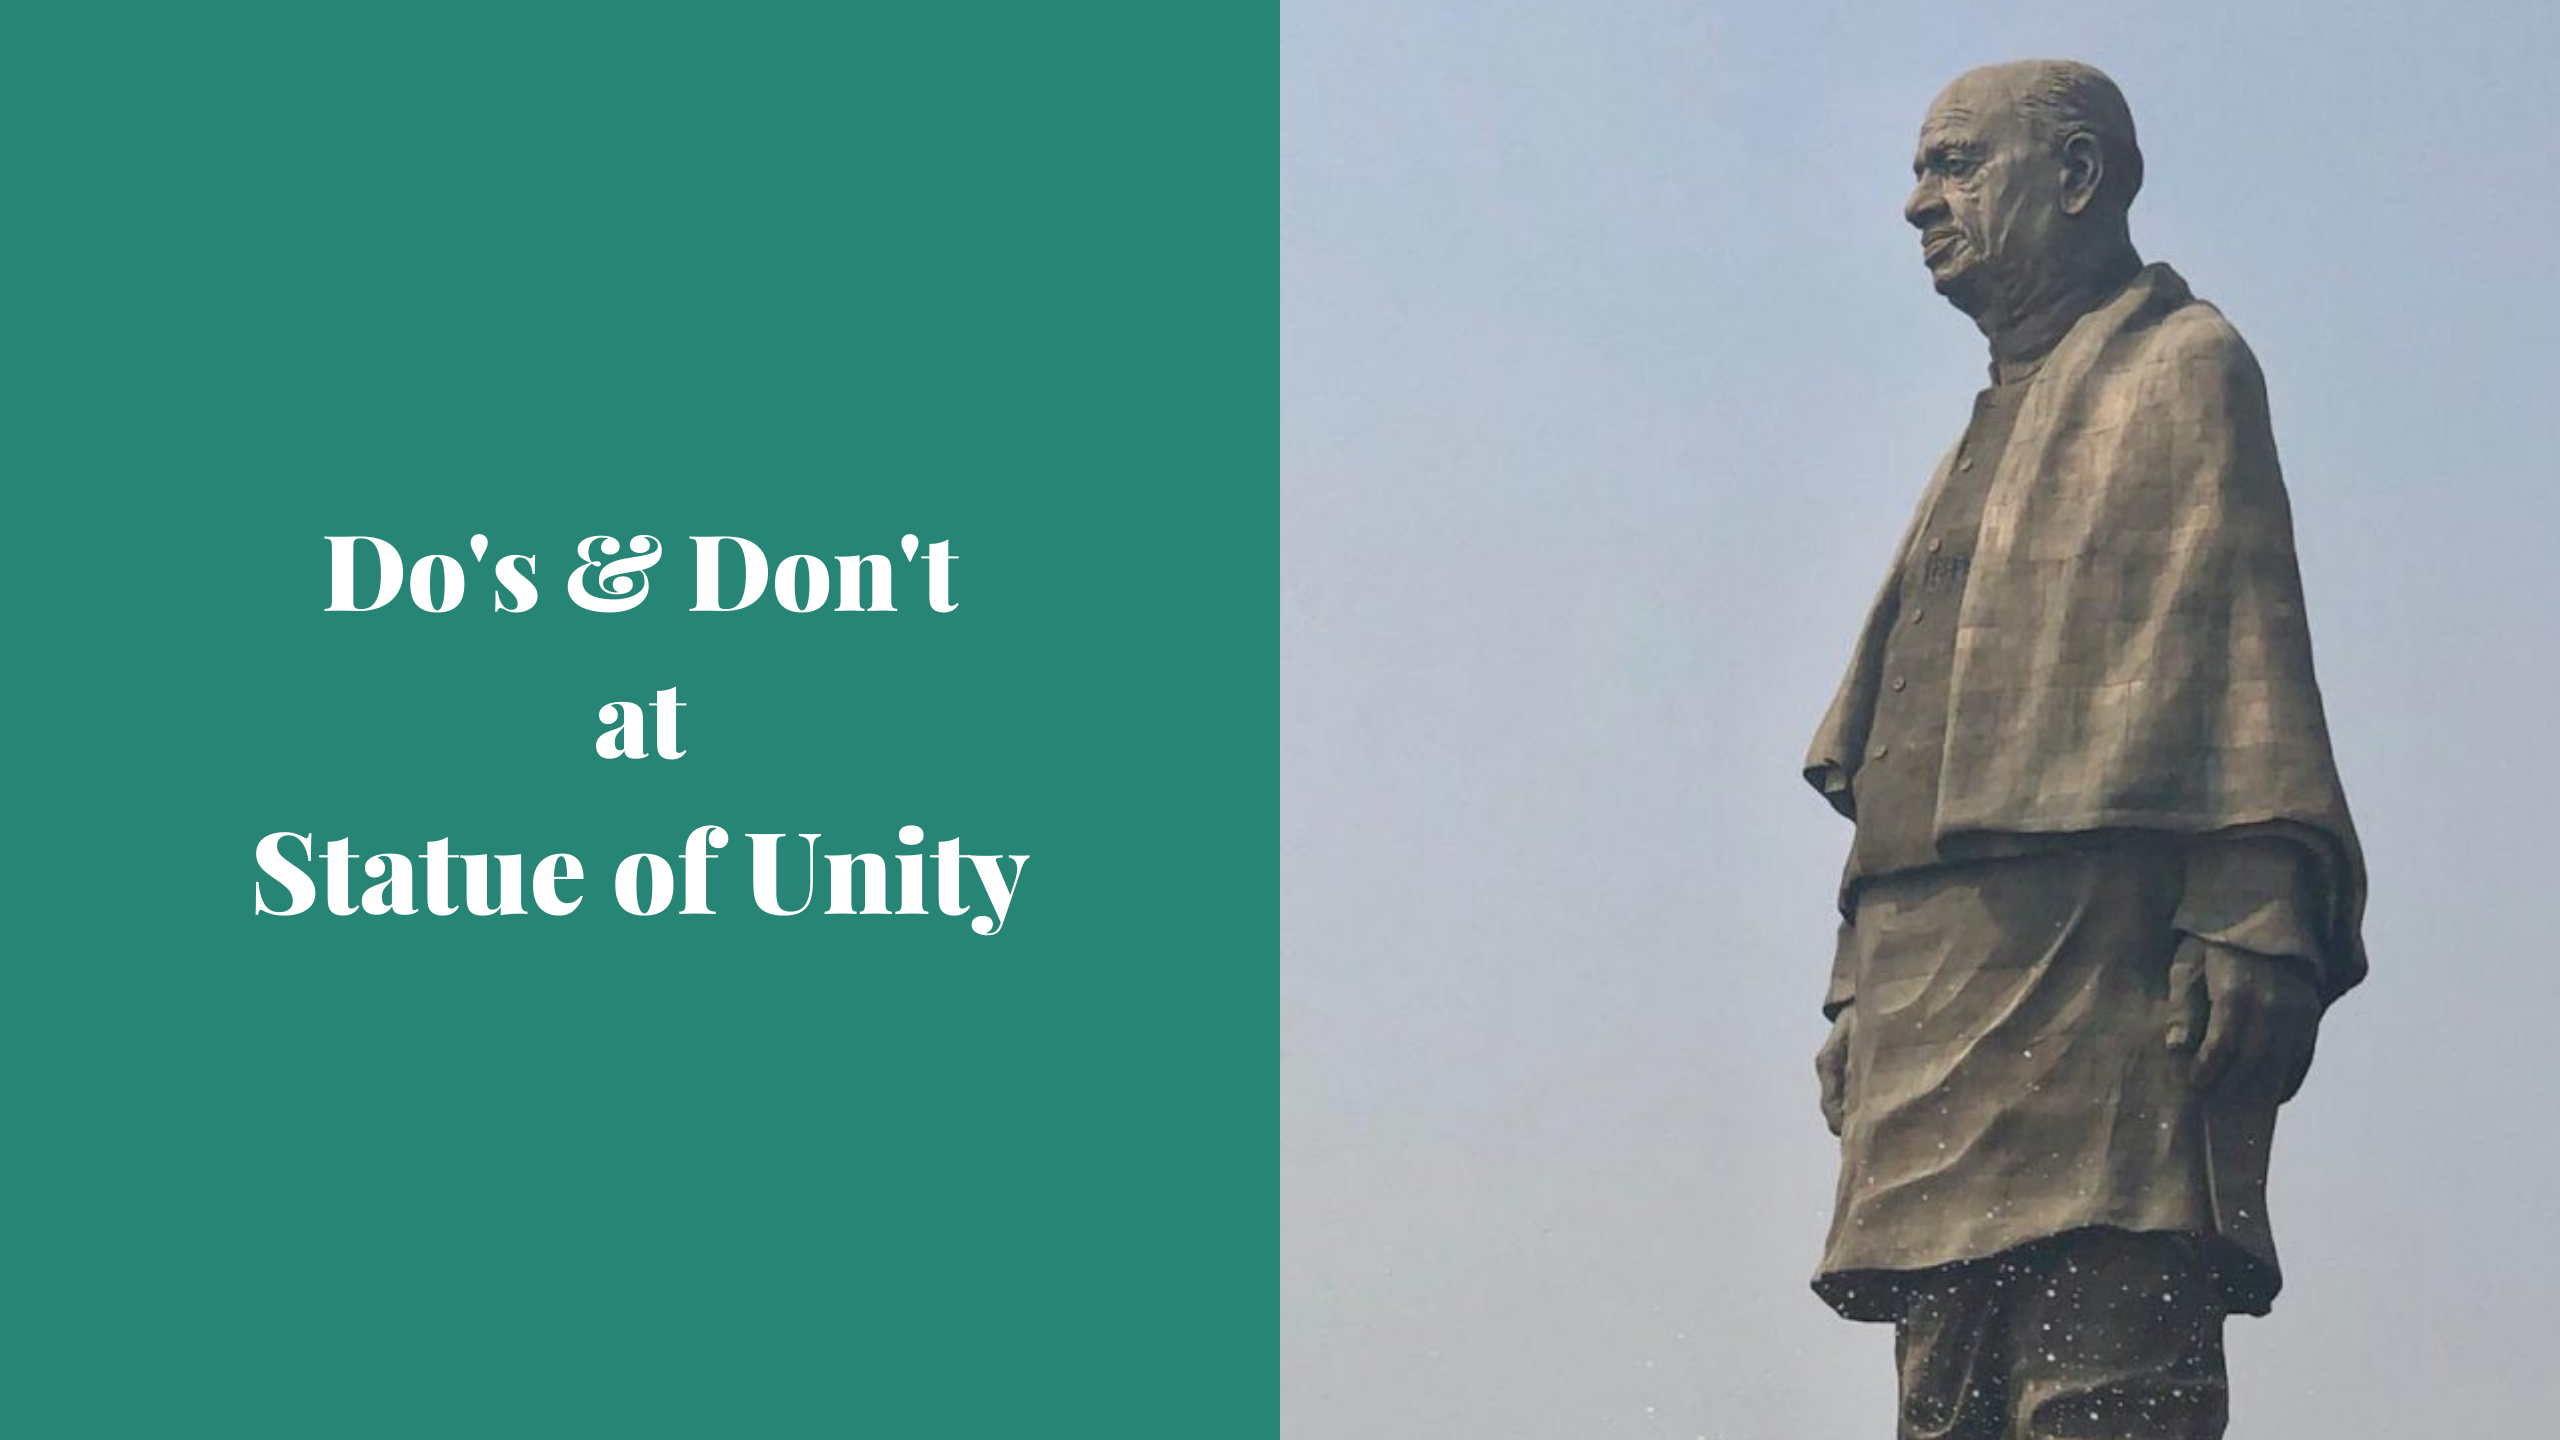 Do's and Don't at Statue of Unity